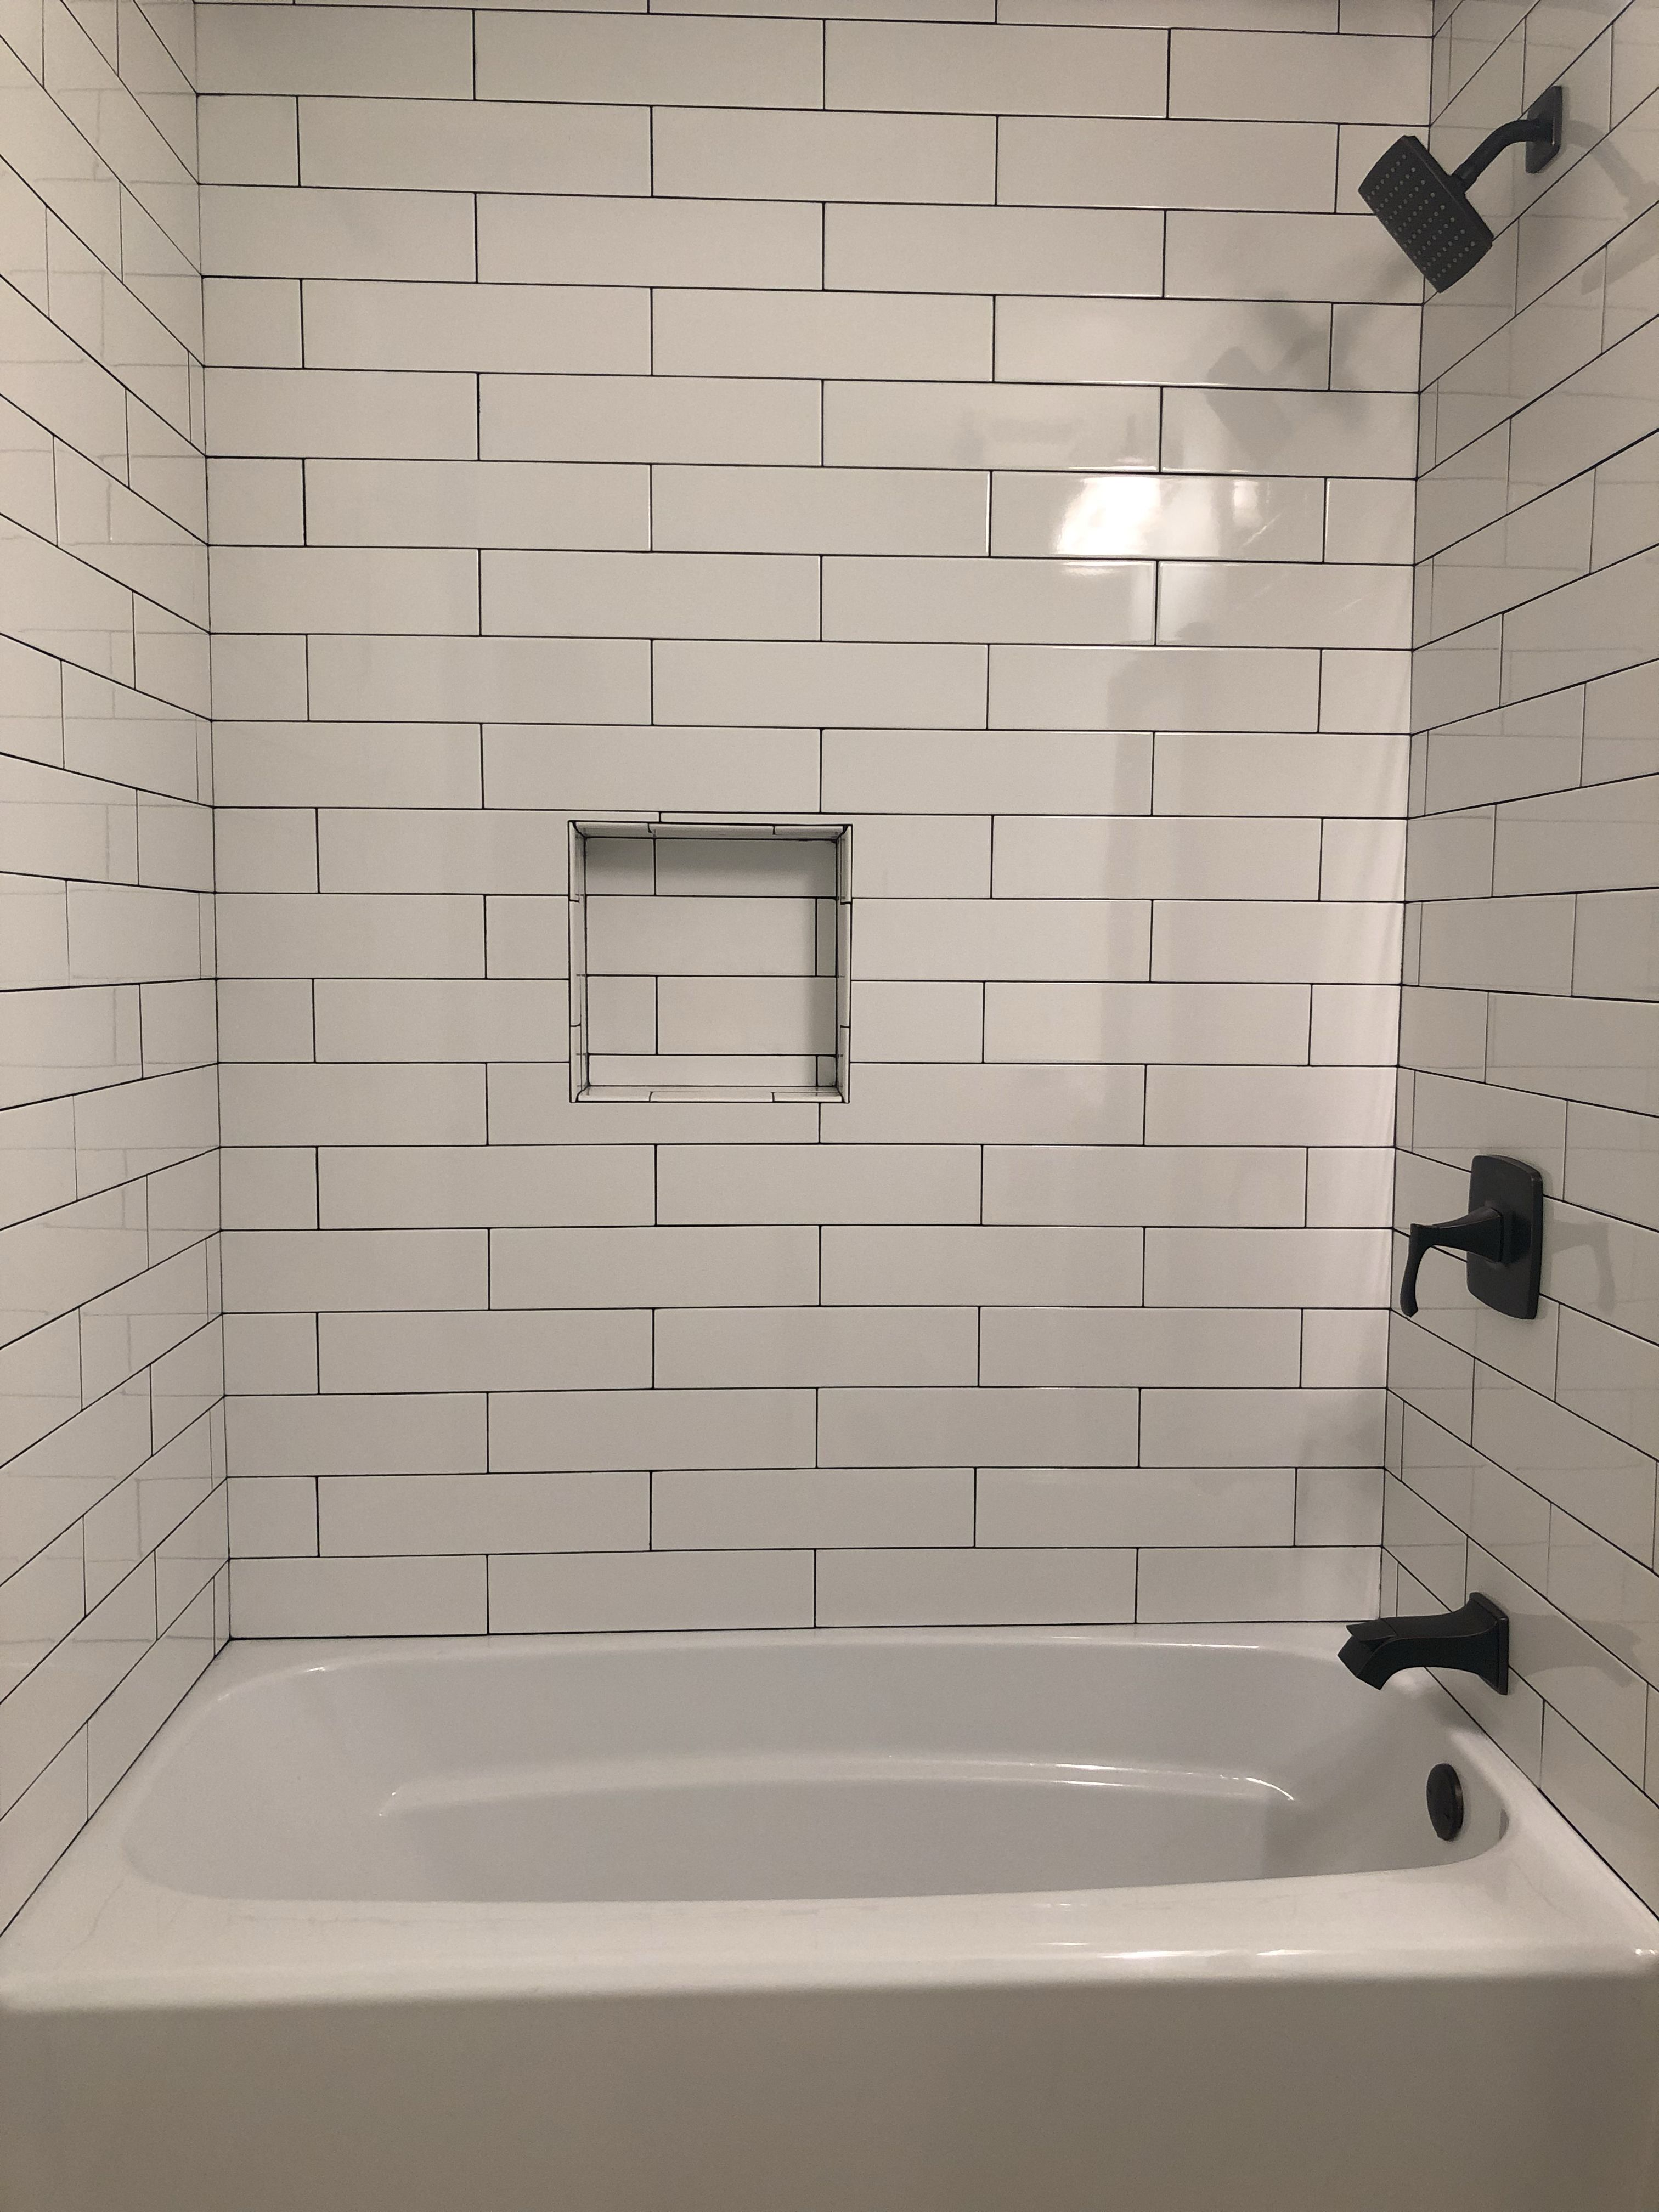 4x16 White Subway Tile From Home Depot Charcoal Prism Grout